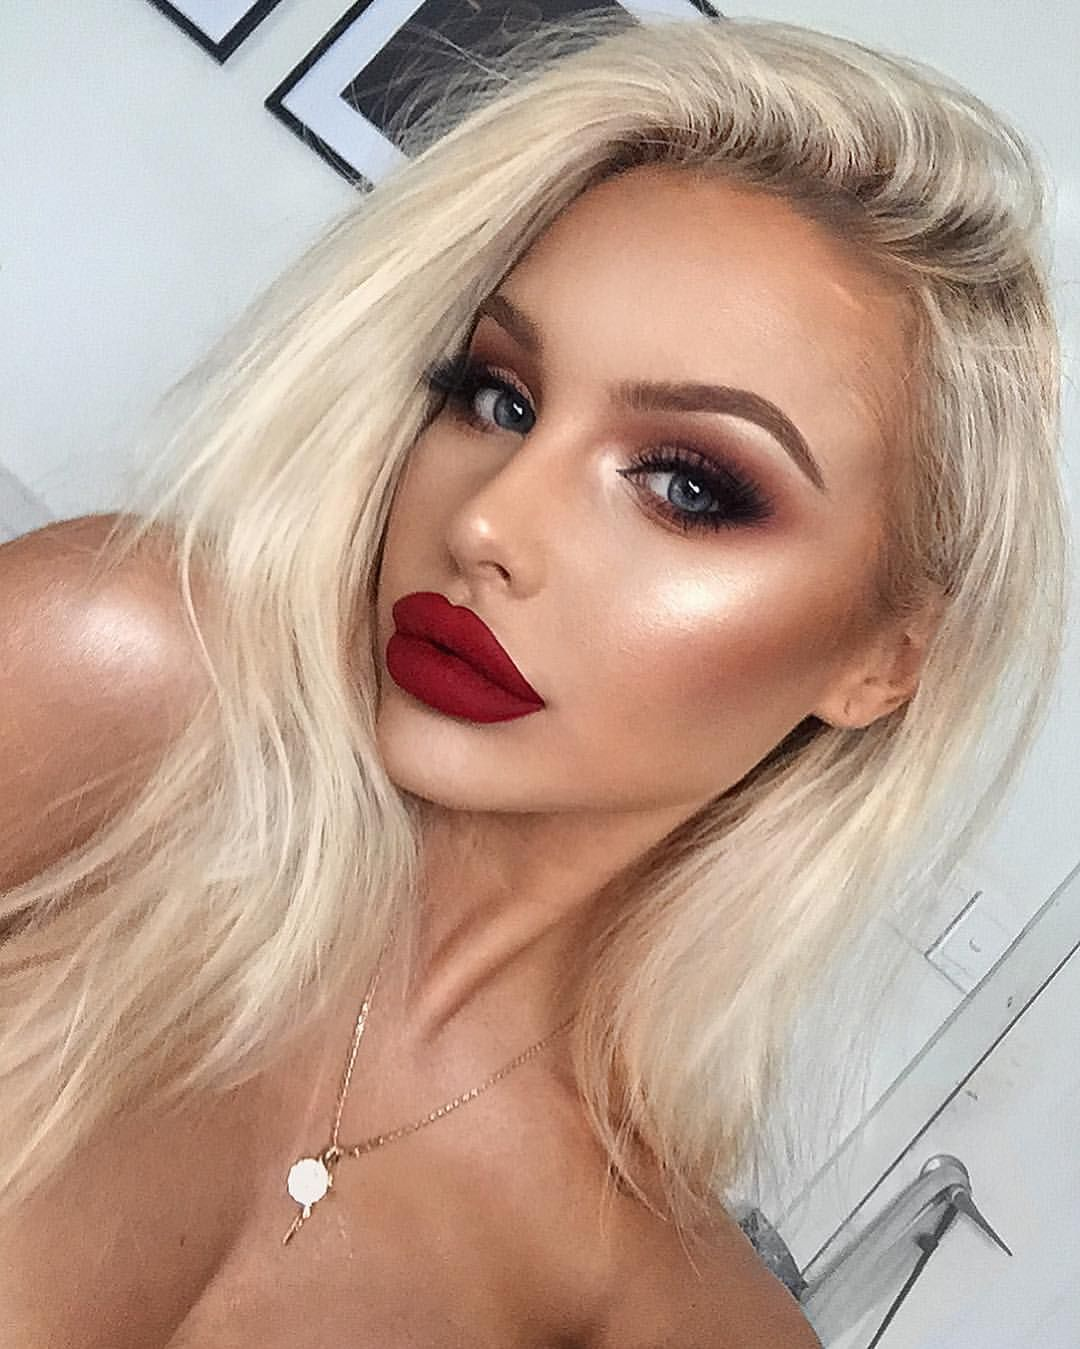 These Days People Know The Price Of Everything And Value Rodeo Bundling 5 Abu L Lips Morphebrushes Liquid Lipstick Stunner Bonny Morphe Highlight Ofracosmetics Drive Brows Anastasiabeverlyhills